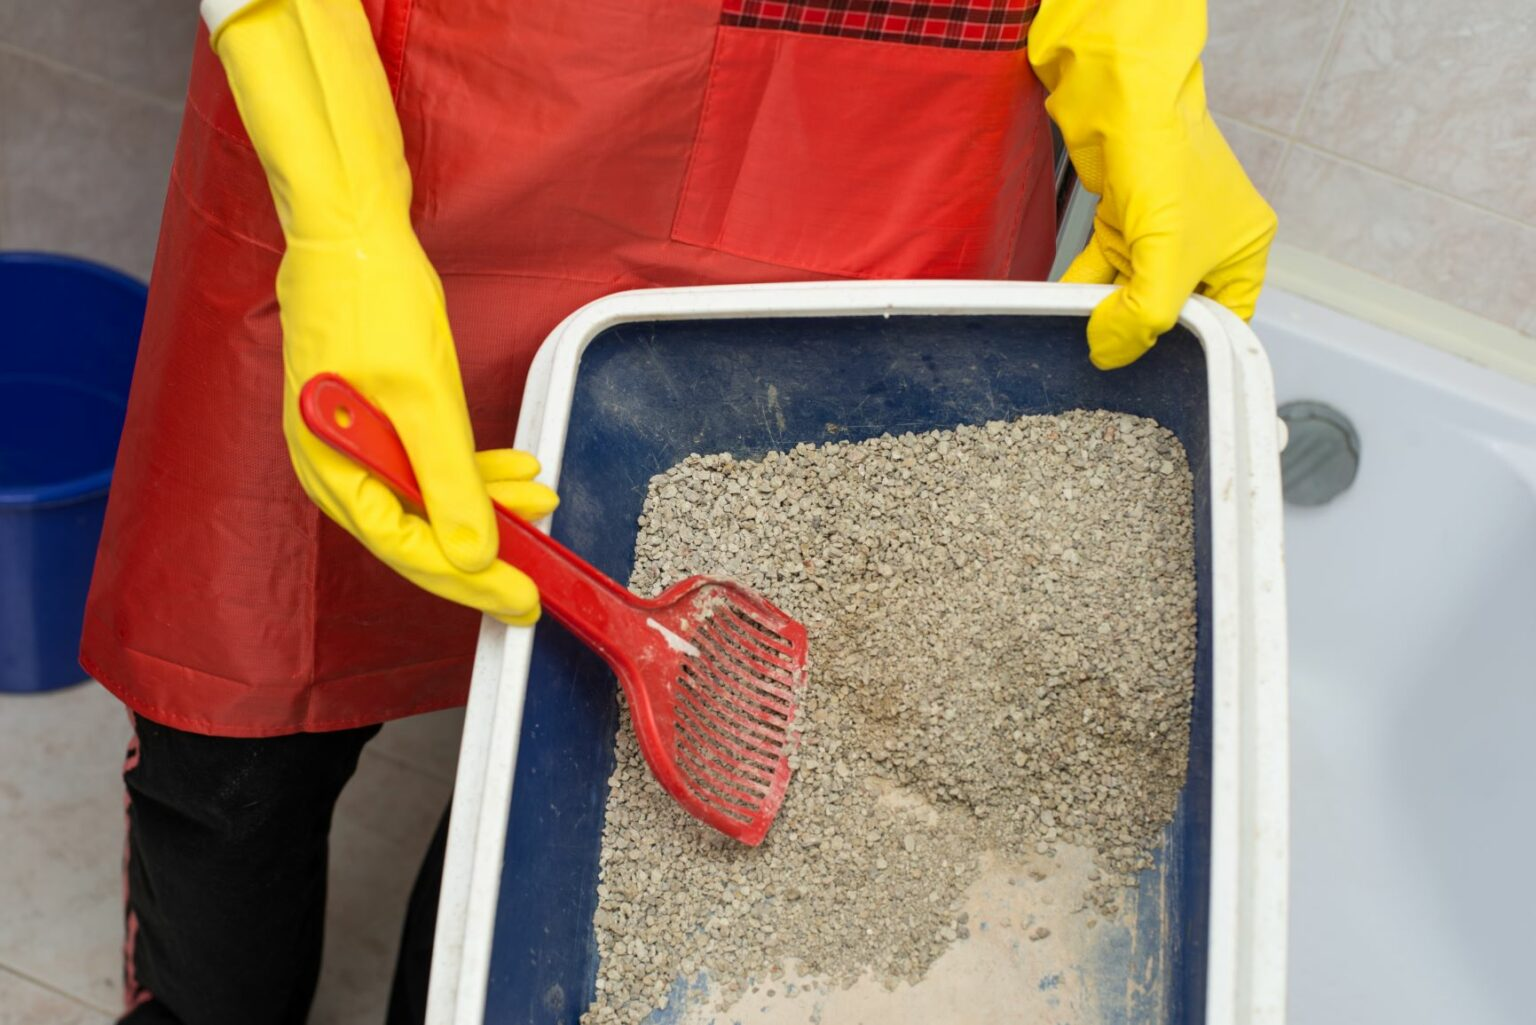 cleaning cat litter